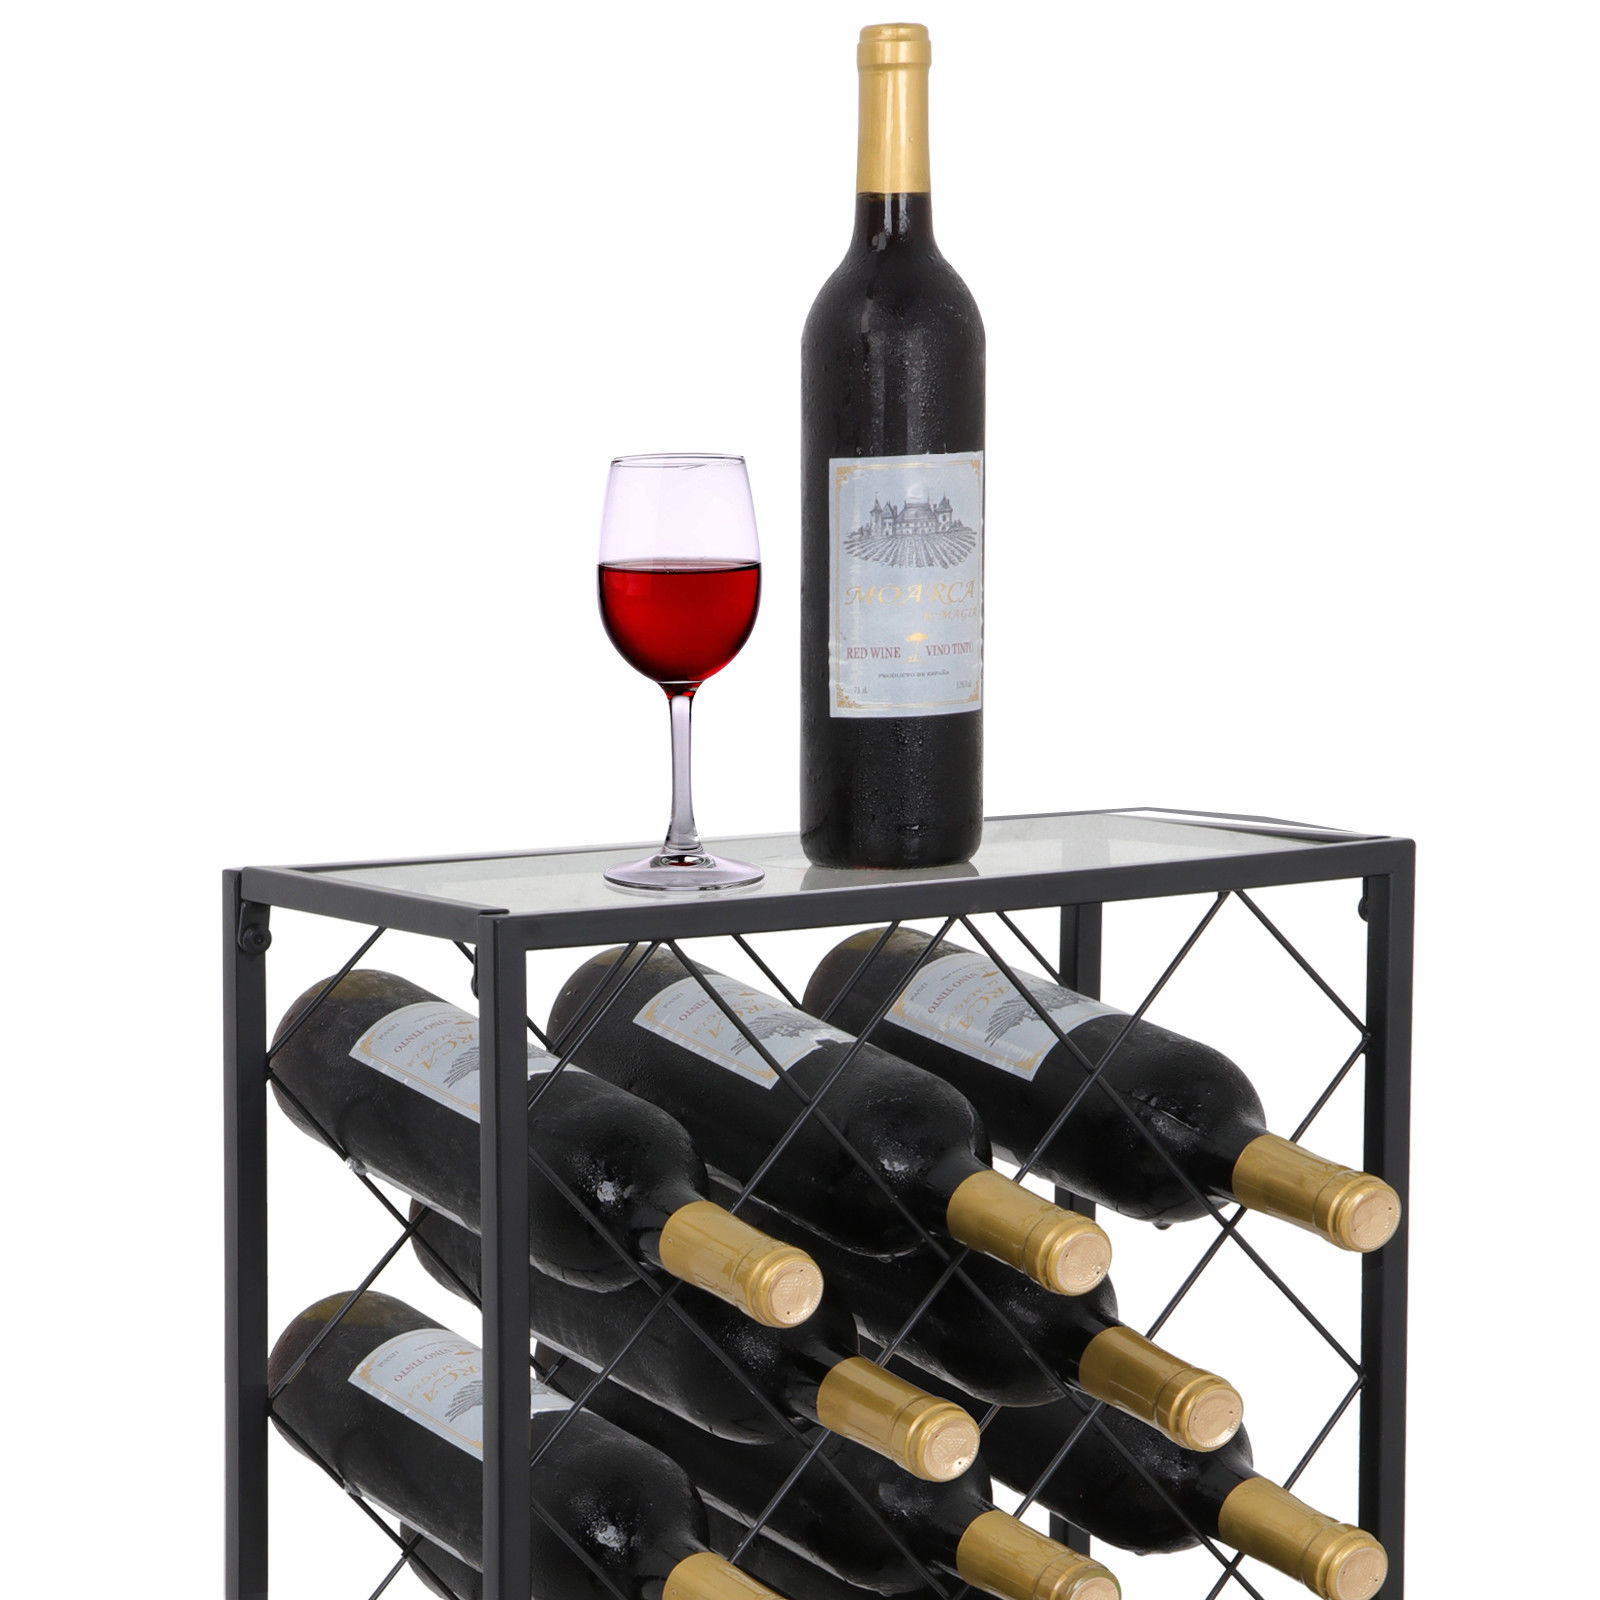 Wine Holder Stand Zeny Mental Wine Rack Display 23 Bottle Wine Storage Holder Stand With Glass Table Top